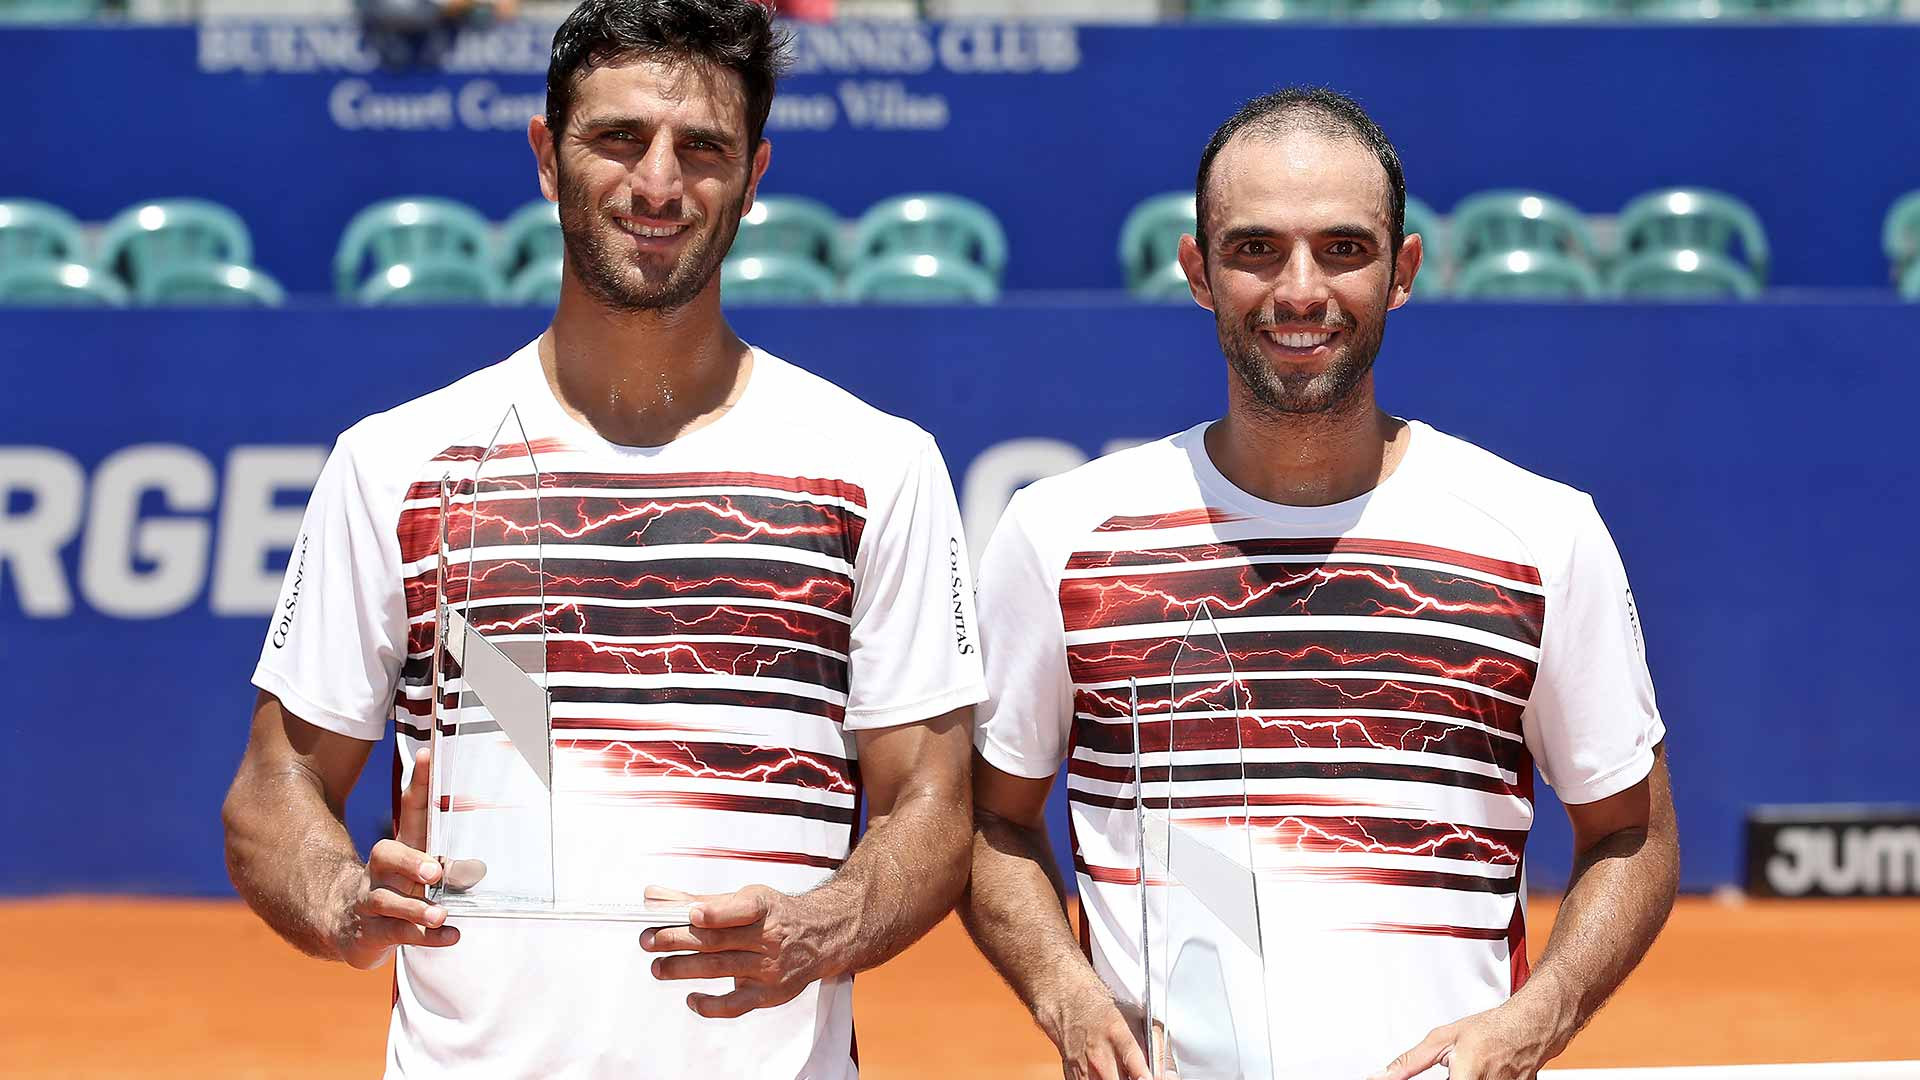 Robert Farah and Juan Sebastian Cabal win their fifth team title in Buenos Aires.